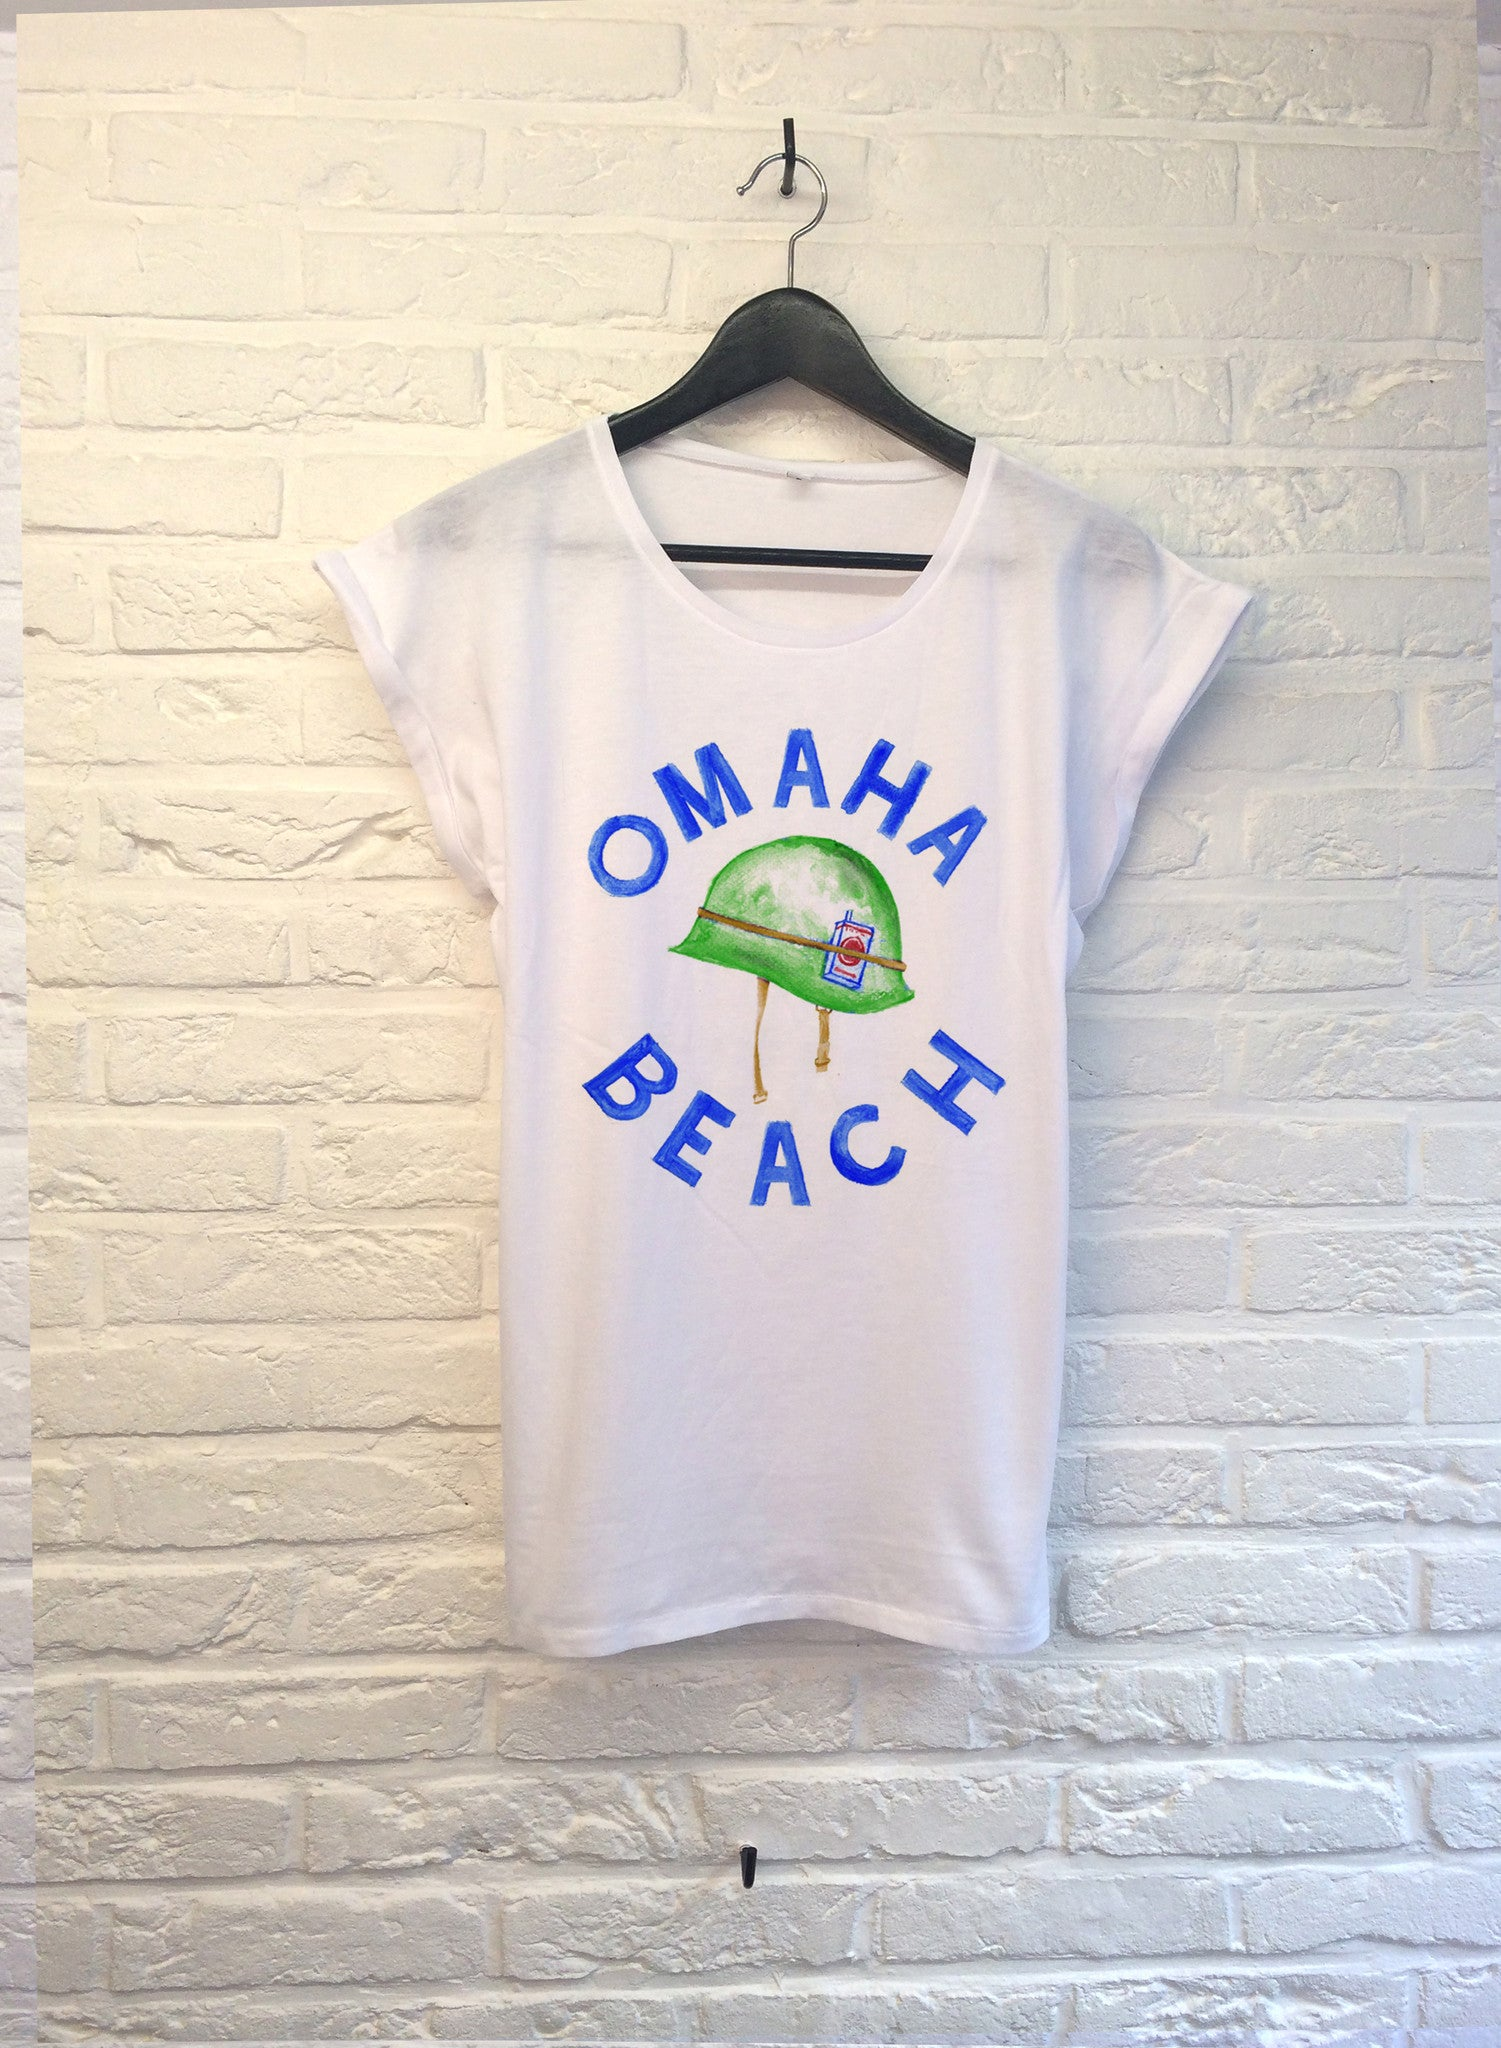 TH Gallery - Omaha Beach- Femme-T shirt-Atelier Amelot